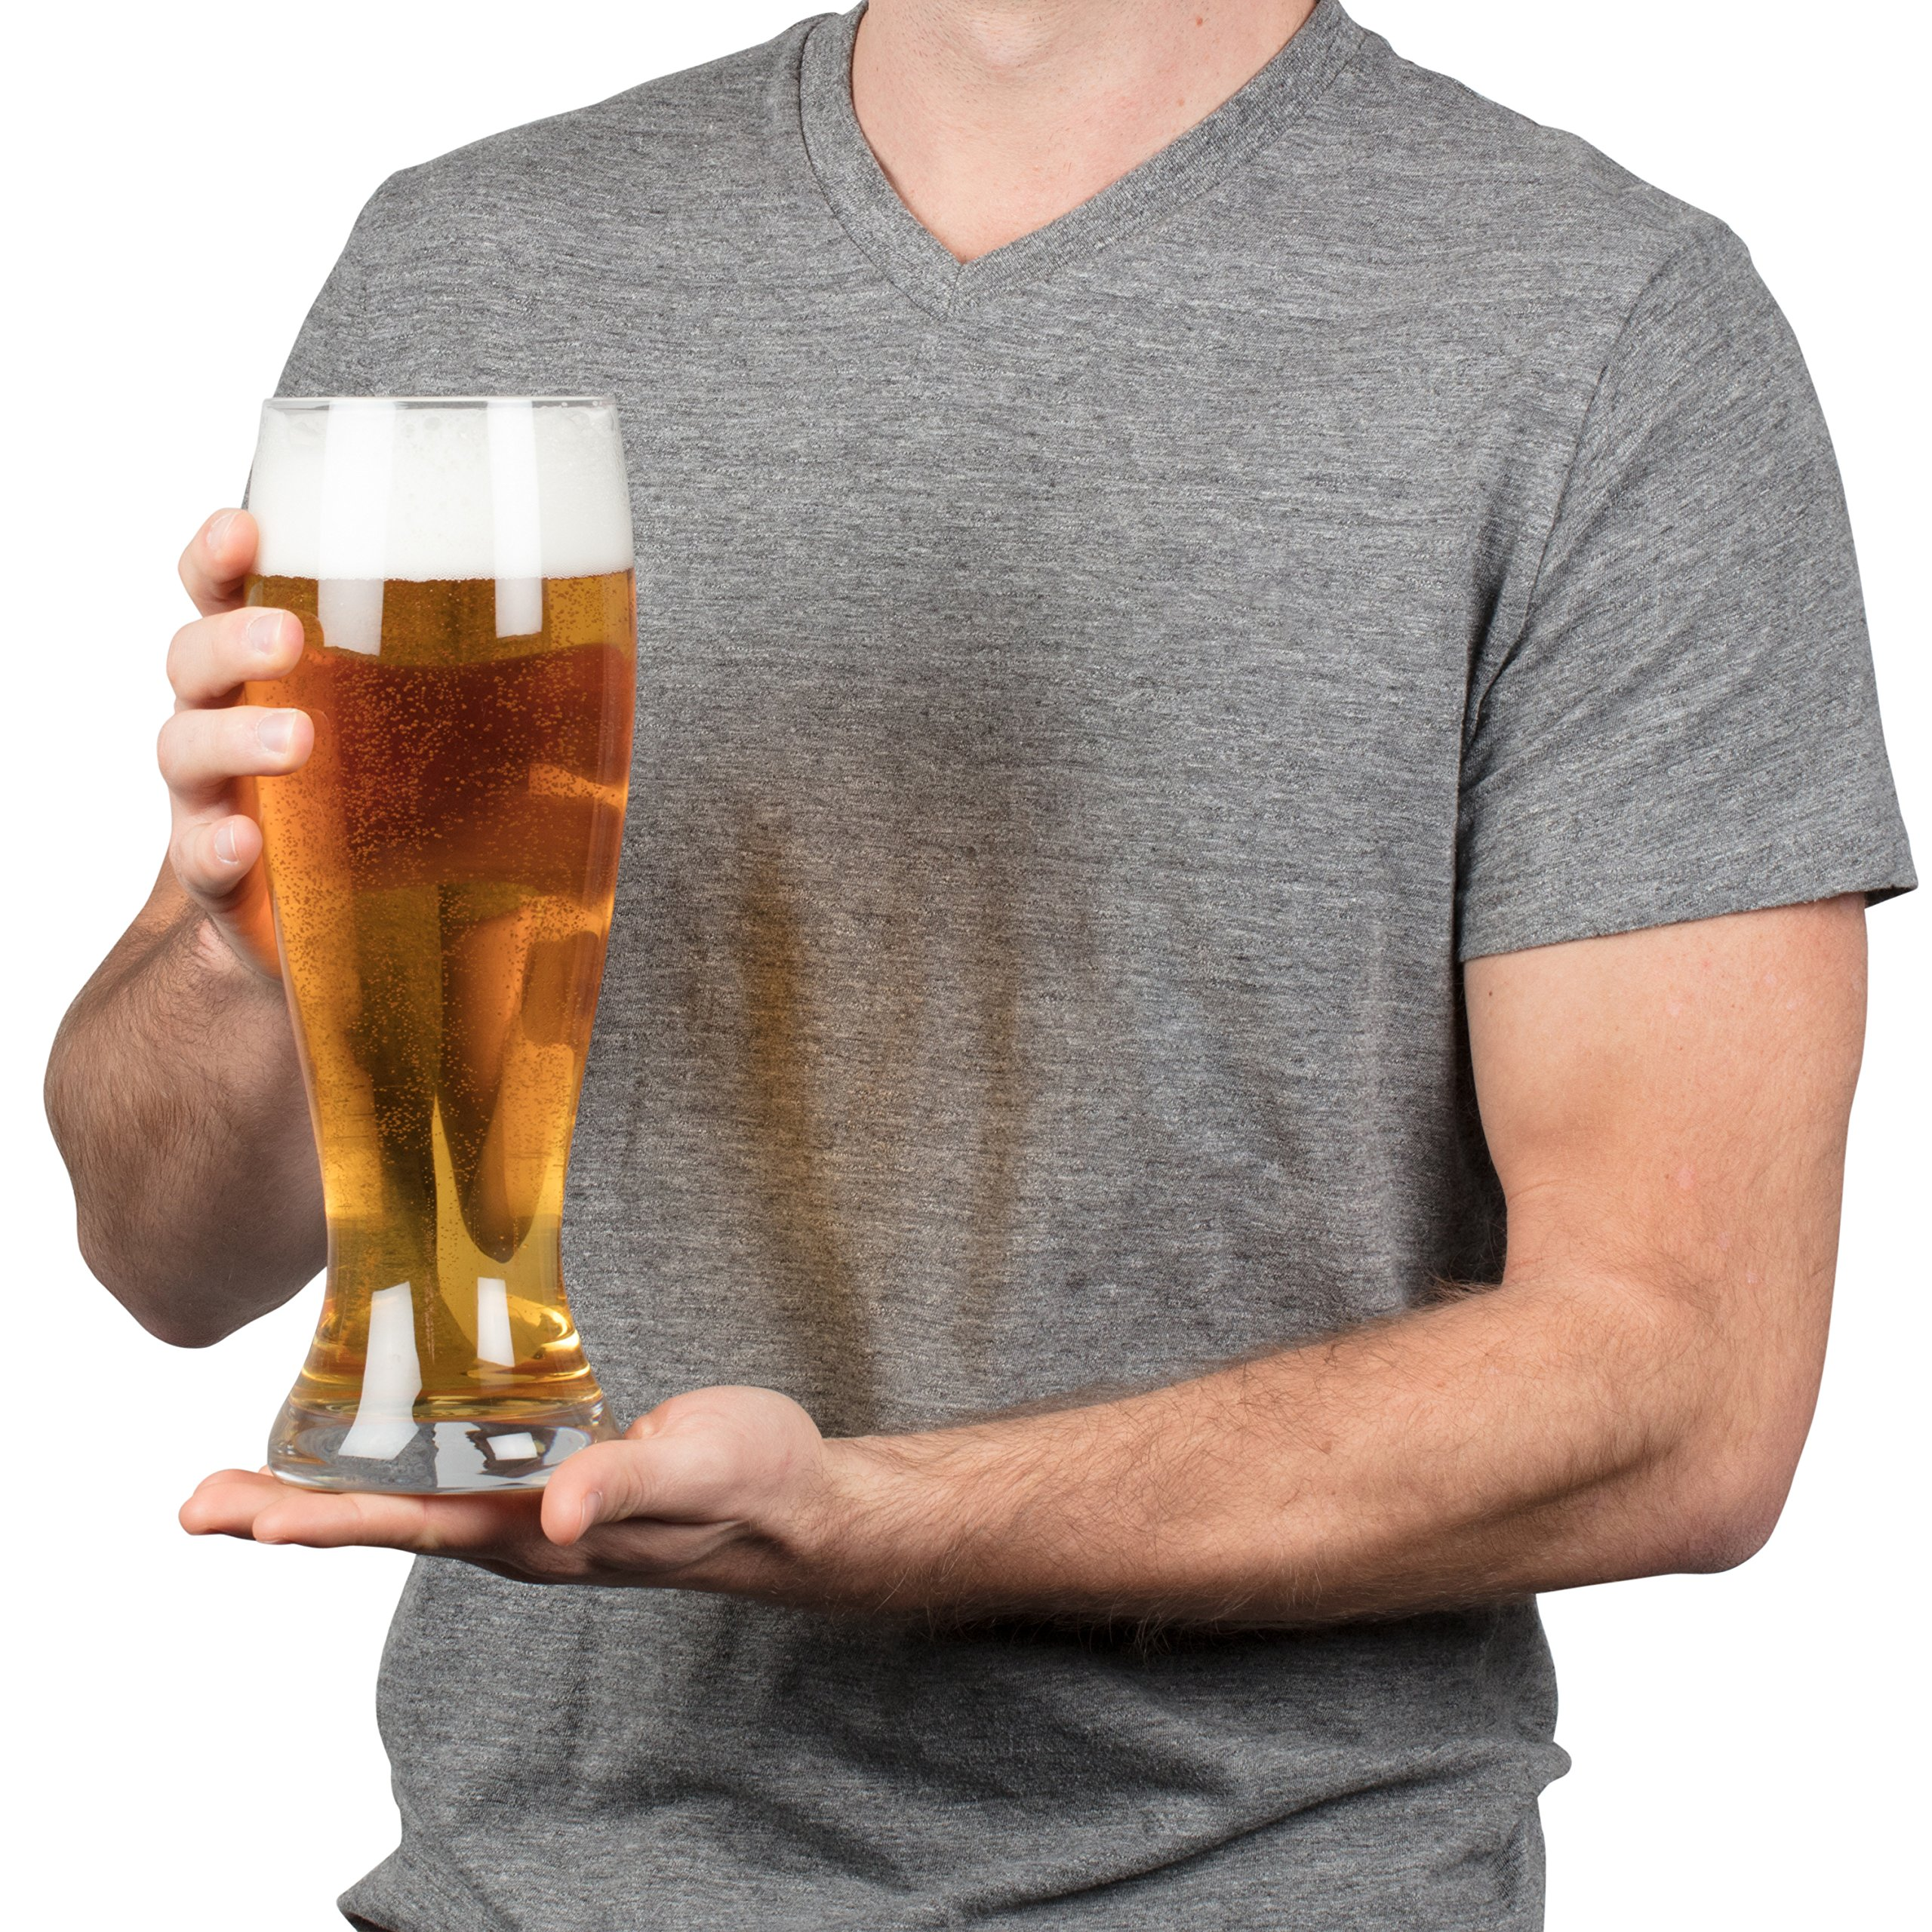 Oversized Extra Large Giant Beer Glass - 53oz - Holds up to 4 Bottles of Beers by Royal Lush (Image #1)